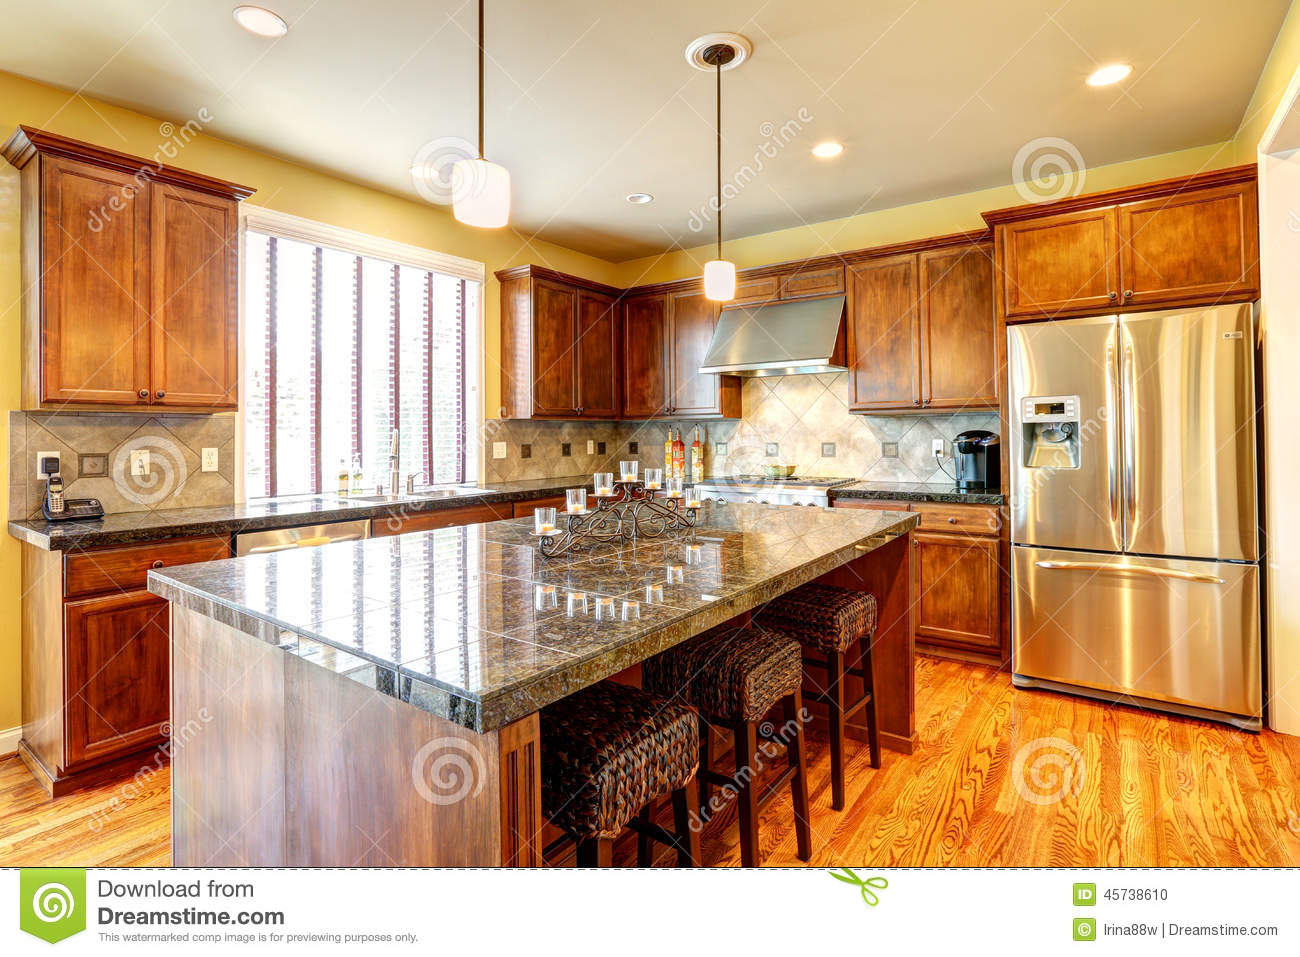 Spacious kitchen with stools at island in house stock for Kitchen remodeling companies